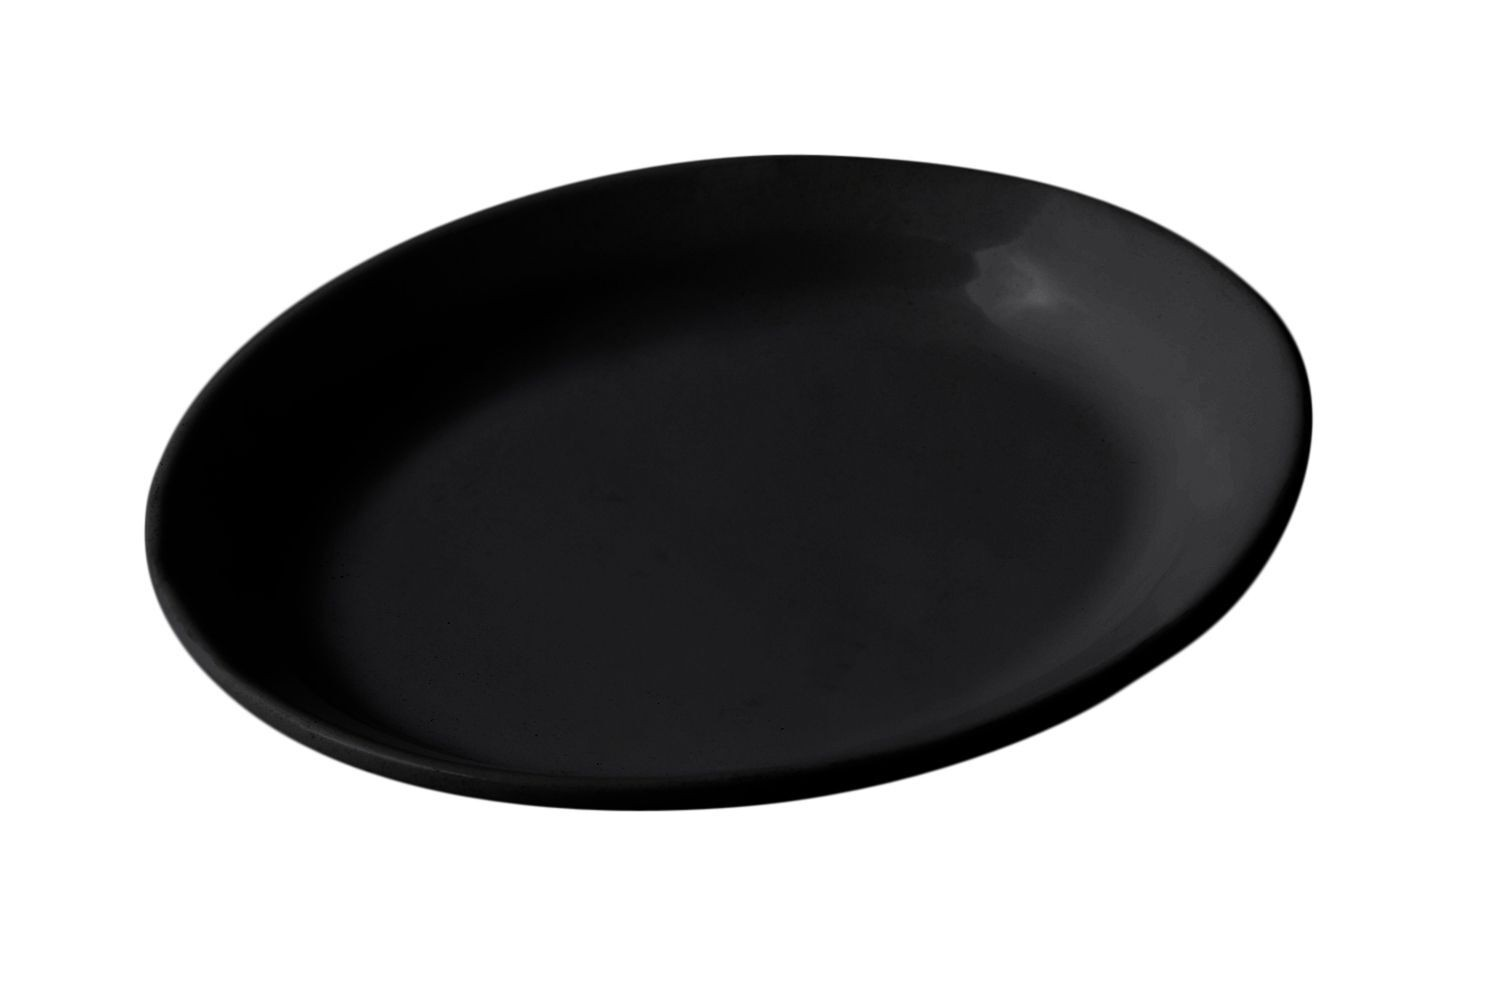 "Bon Chef 2033S Small Oval Platter, Sandstone 7 3/4"" x 9 3/4"", Set of 3"